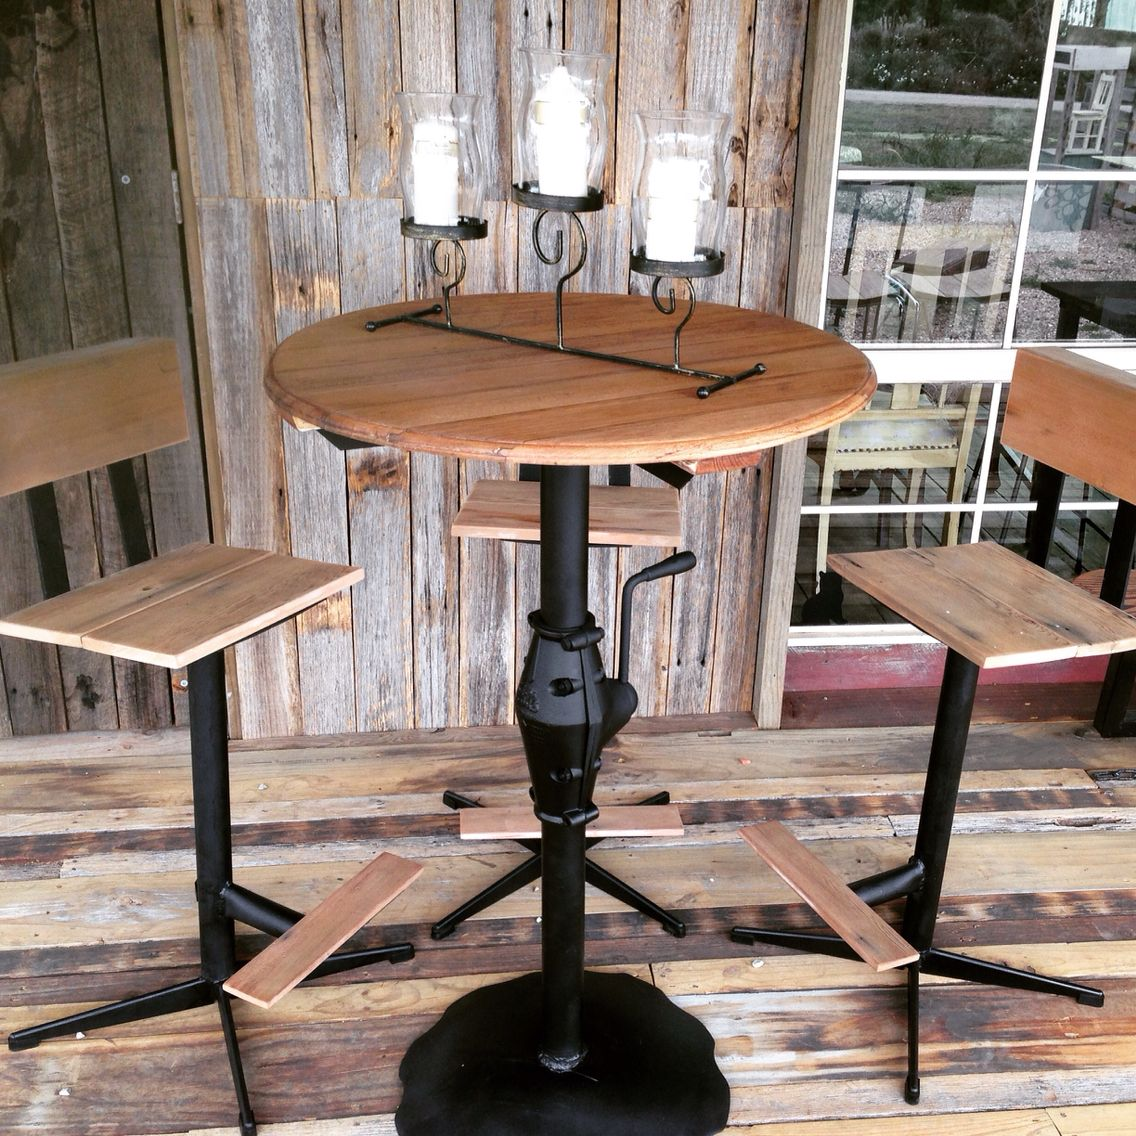 4 Piece Mancave Bar Table And Stools Upcycled From Hills Hoist Plough Disc Reclaimed Cedar S Streel 350 More Furniture Available